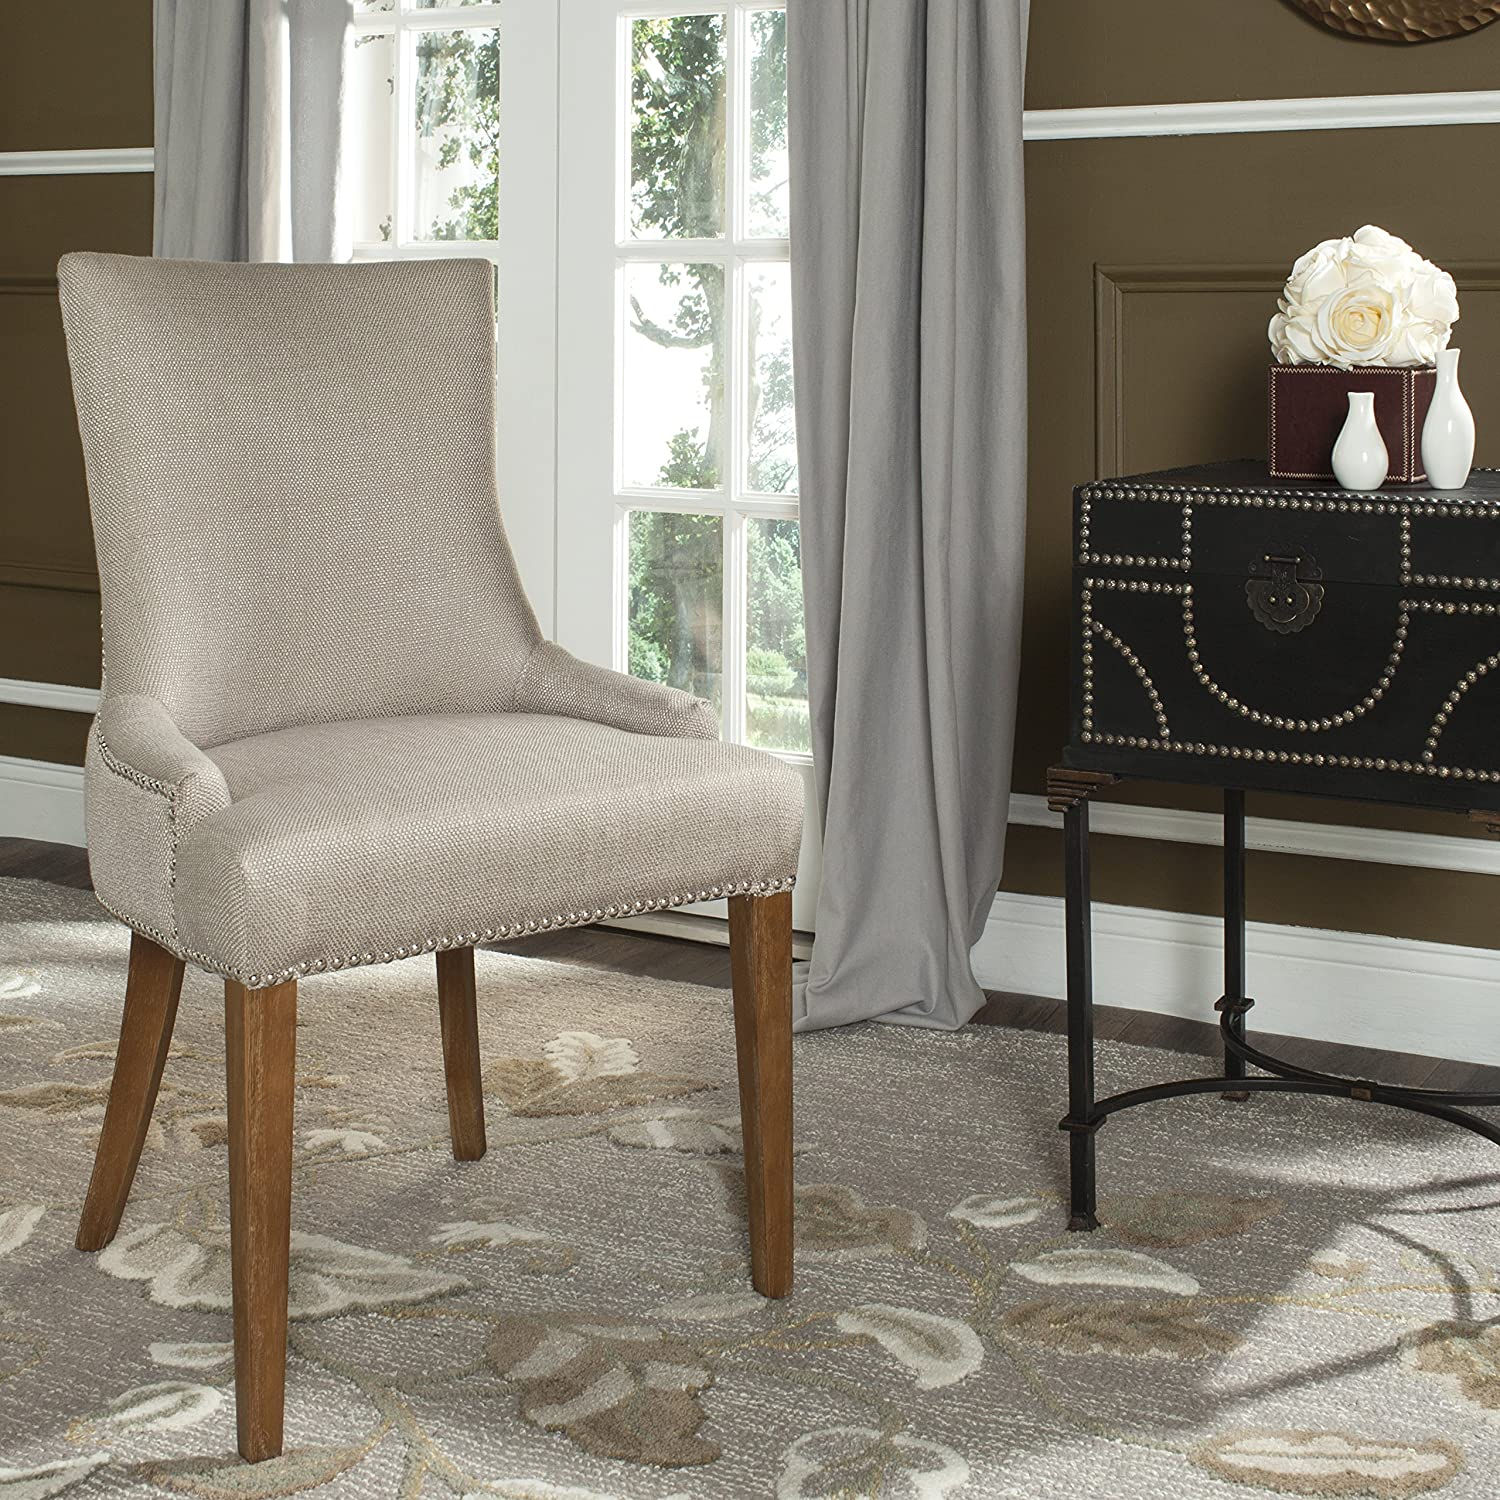 Safavieh Mercer Collection Eva Viscose Dining Chair with Trim Nail Head, 24.8-Inch Wide, Beige